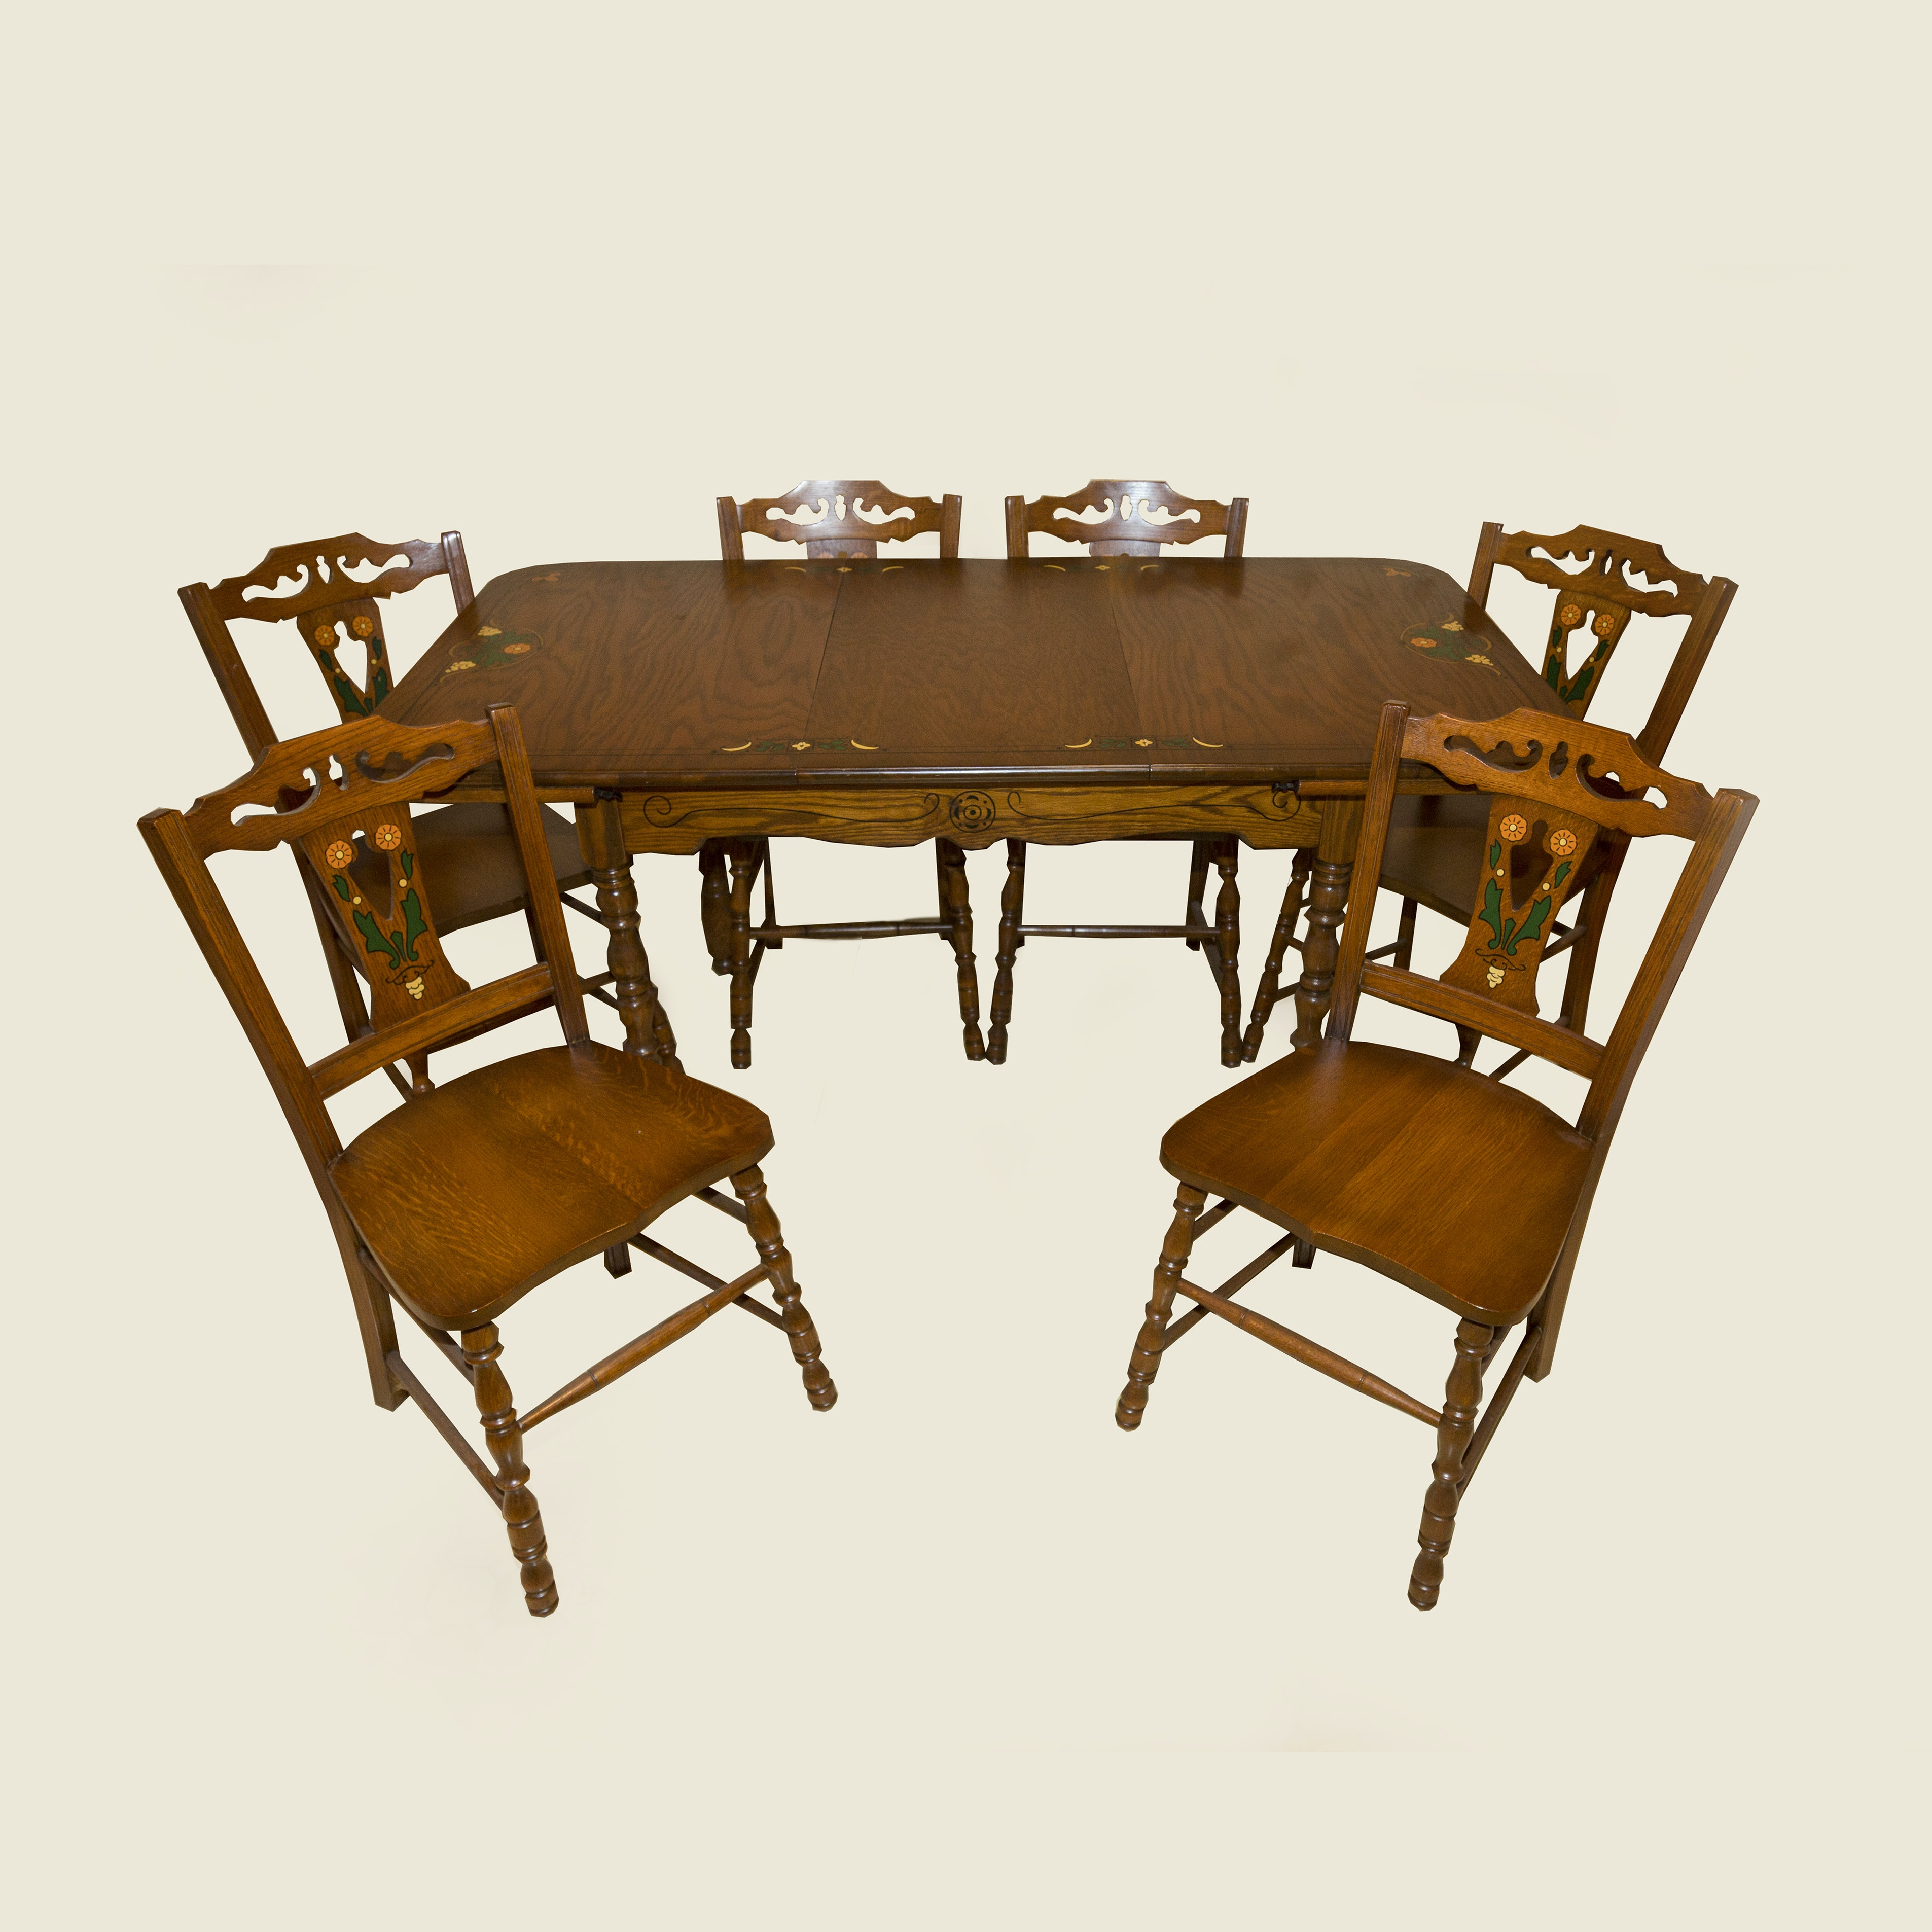 Vintage Oak Dining Table with Six Chairs by Watertown Table-Slide Corporation